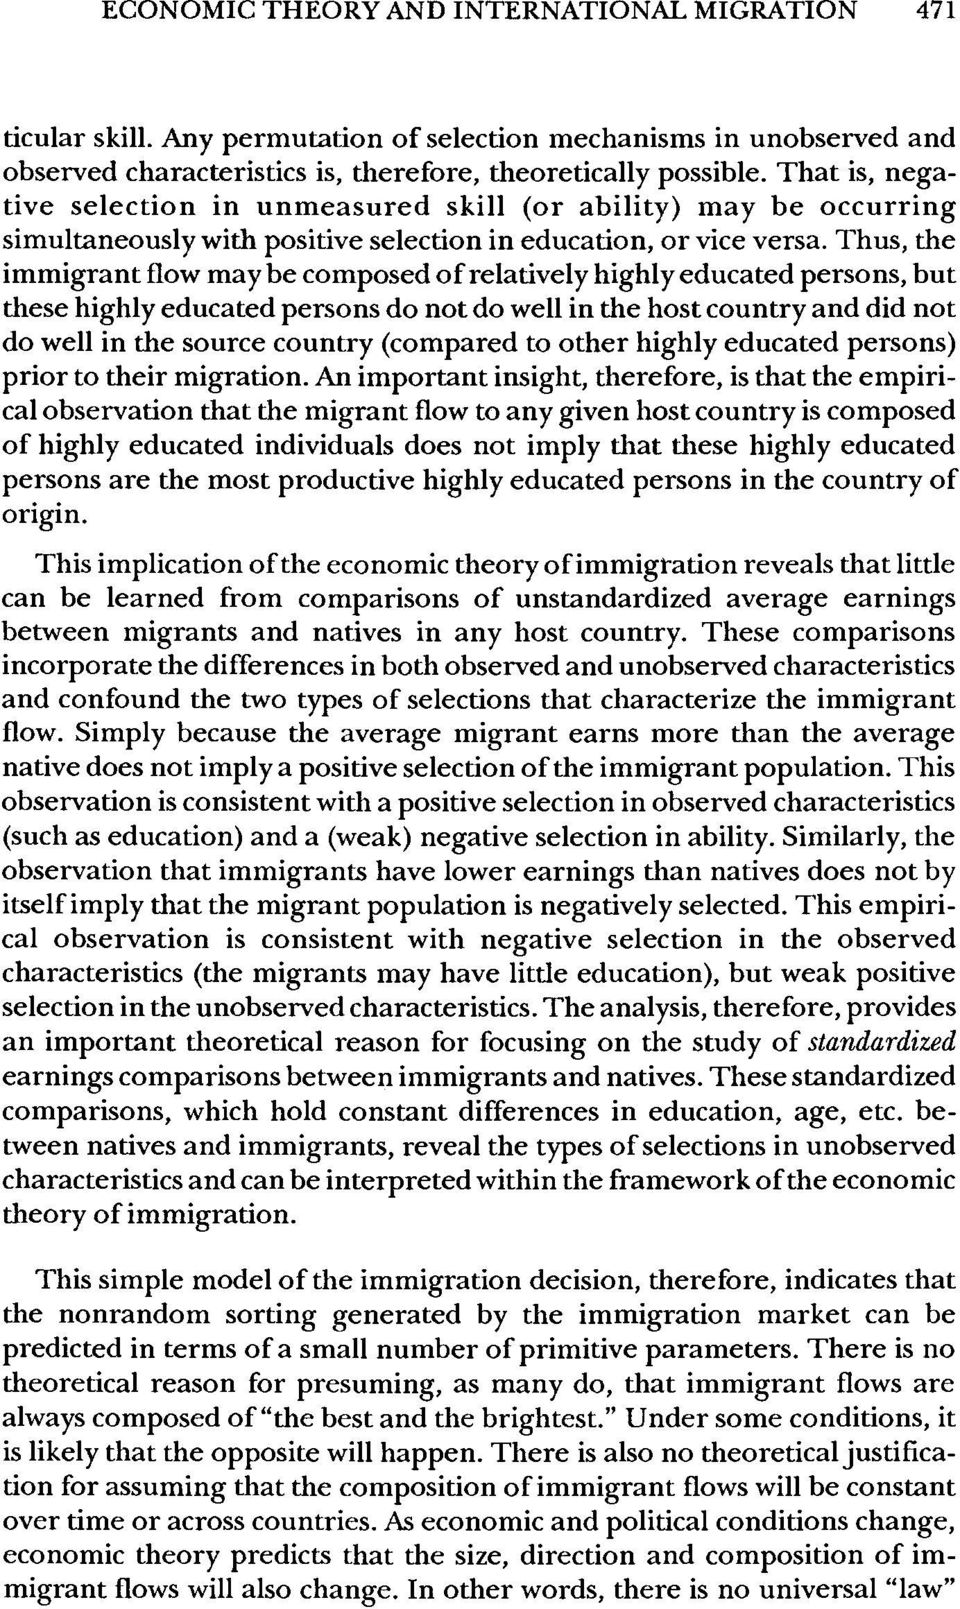 Thus, the immigrant flow maybe composed of relatively highly educated persons, but these highly educated persons do not do well in the host country and did not do well in the source country (compared